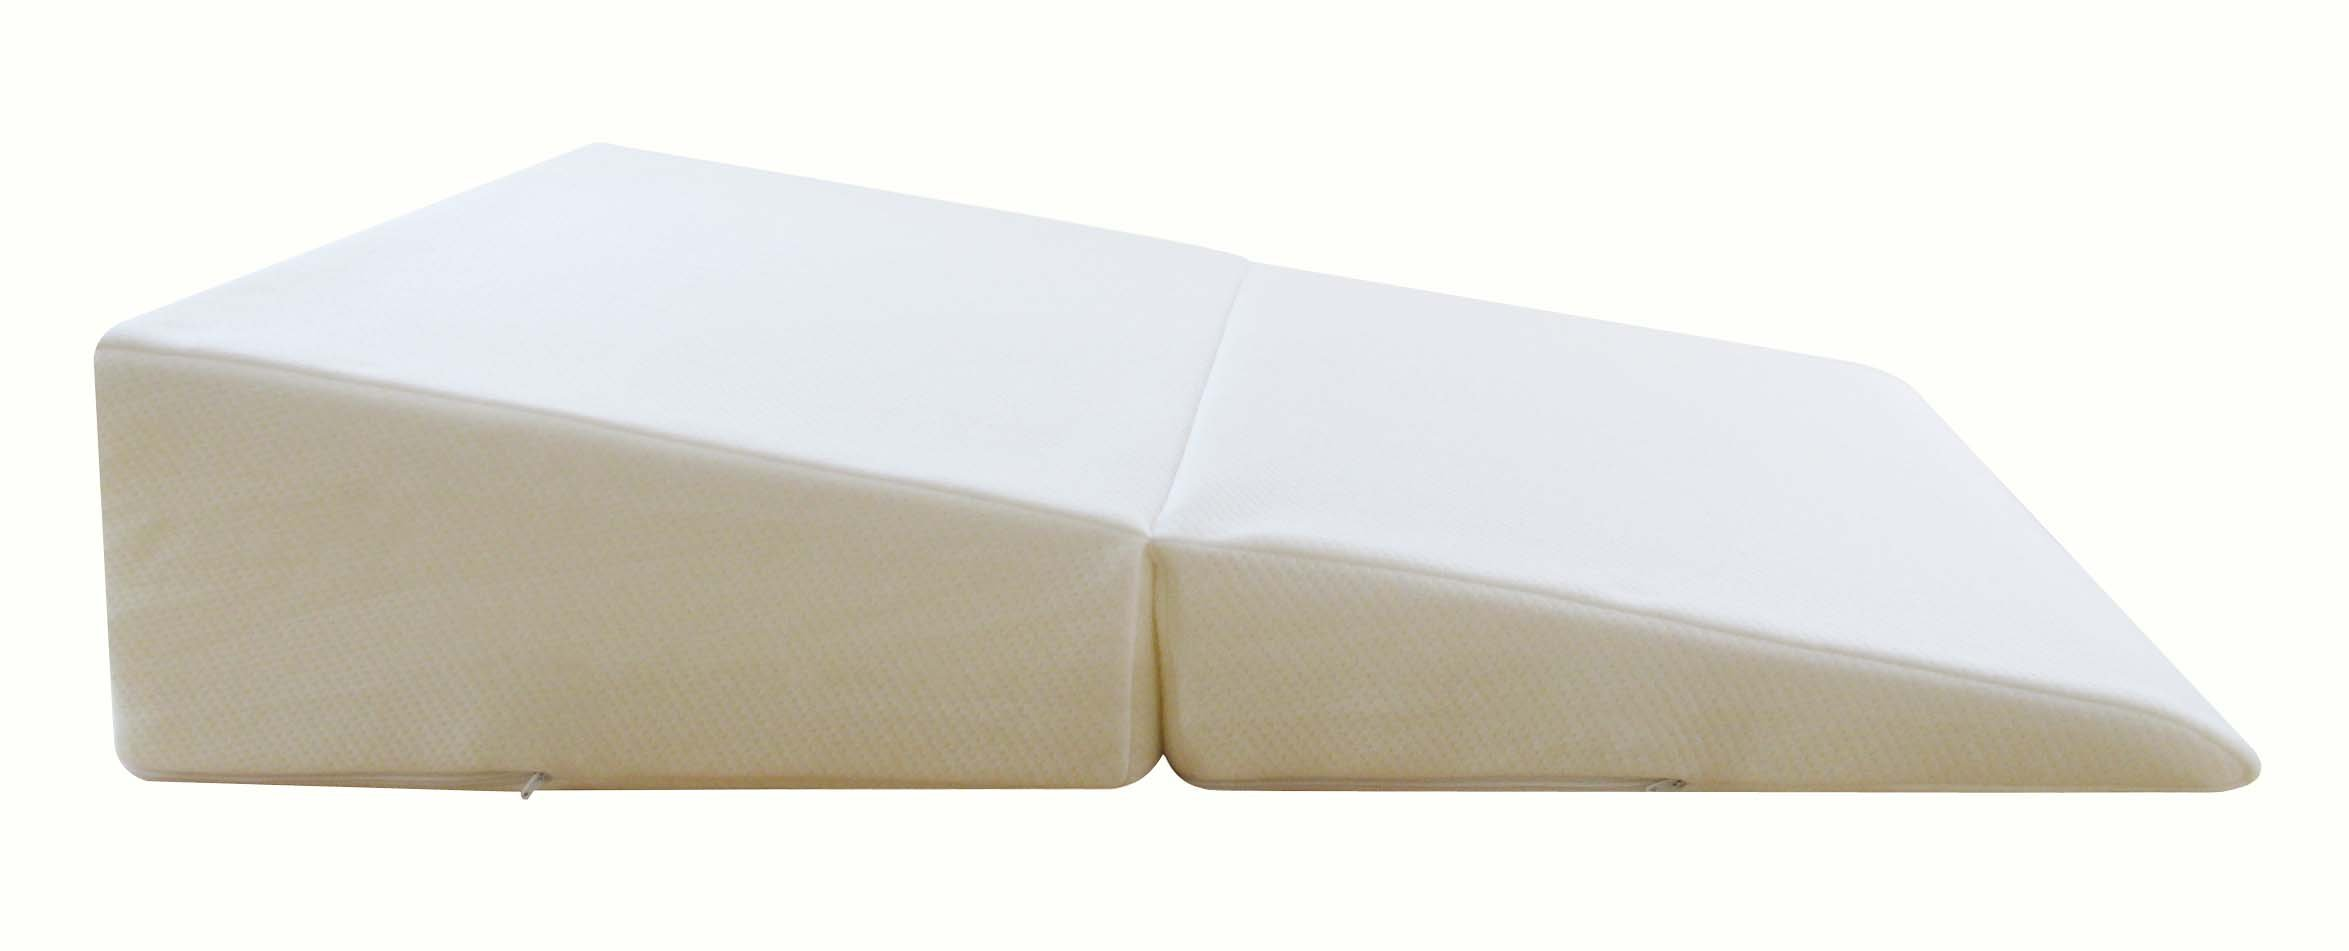 InteVision Folding Wedge Bed Pillow (32'' x 25'' x 6.5'') with a Carrying Case by InteVision (Image #3)